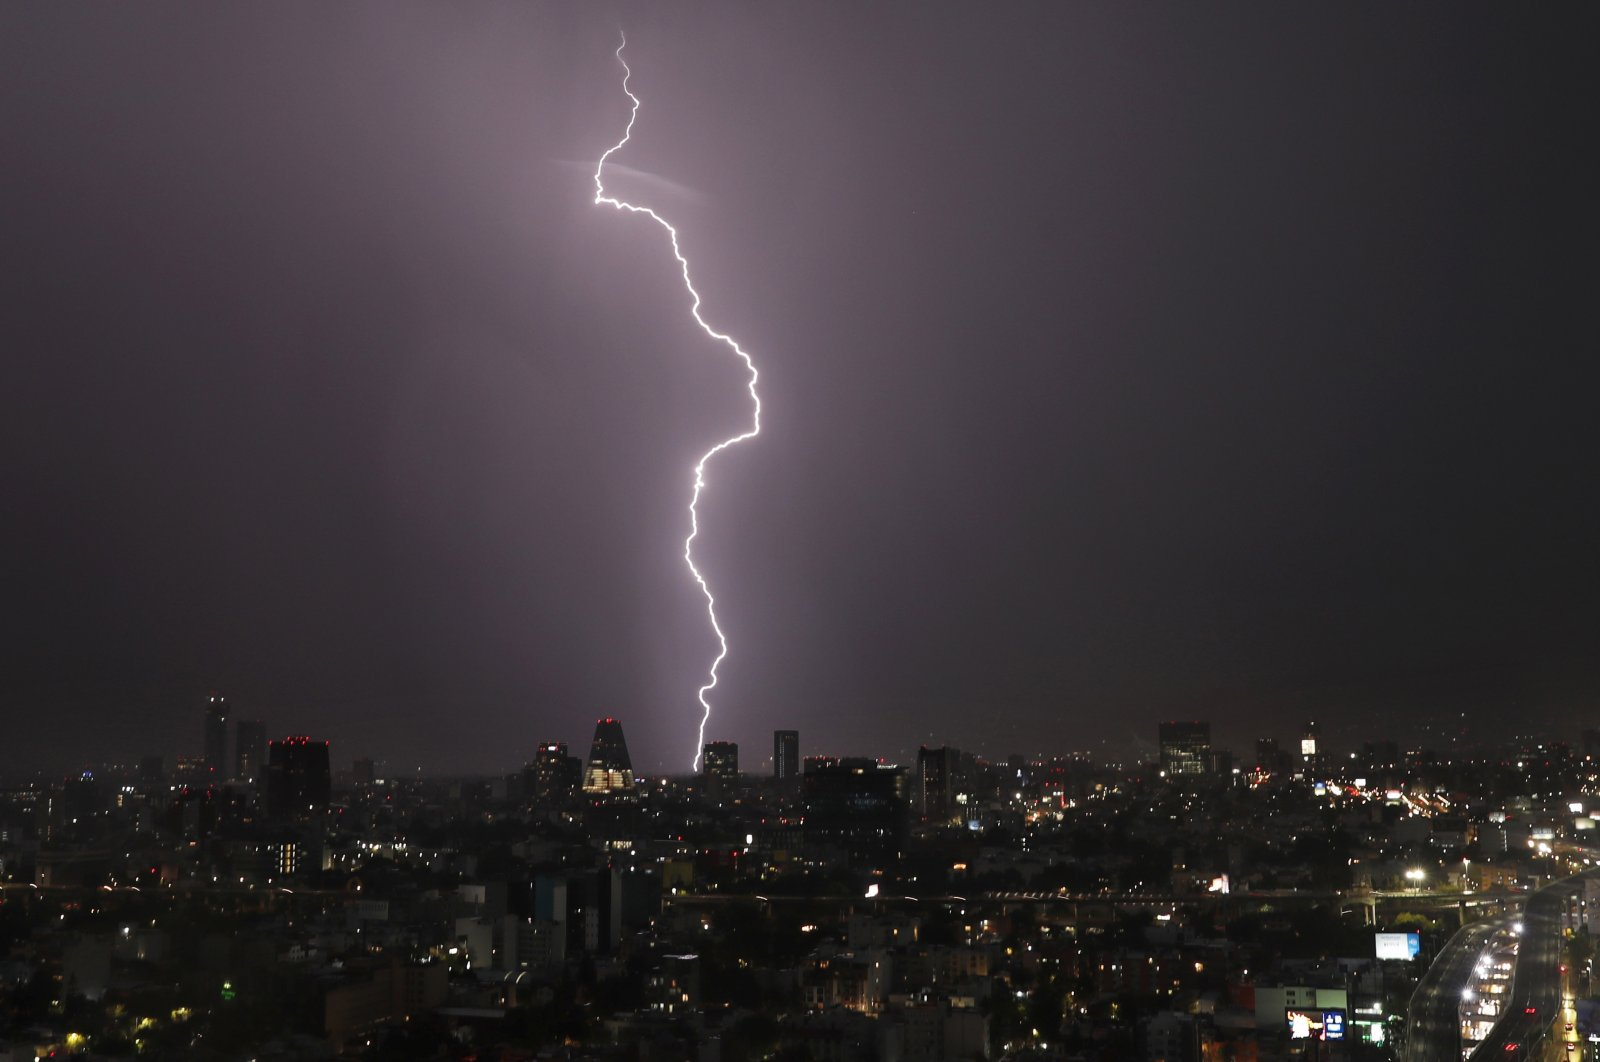 A bolt of lightning strikes during a storm in Mexico City, Mexico, July 18, 2020. (AP Photo)